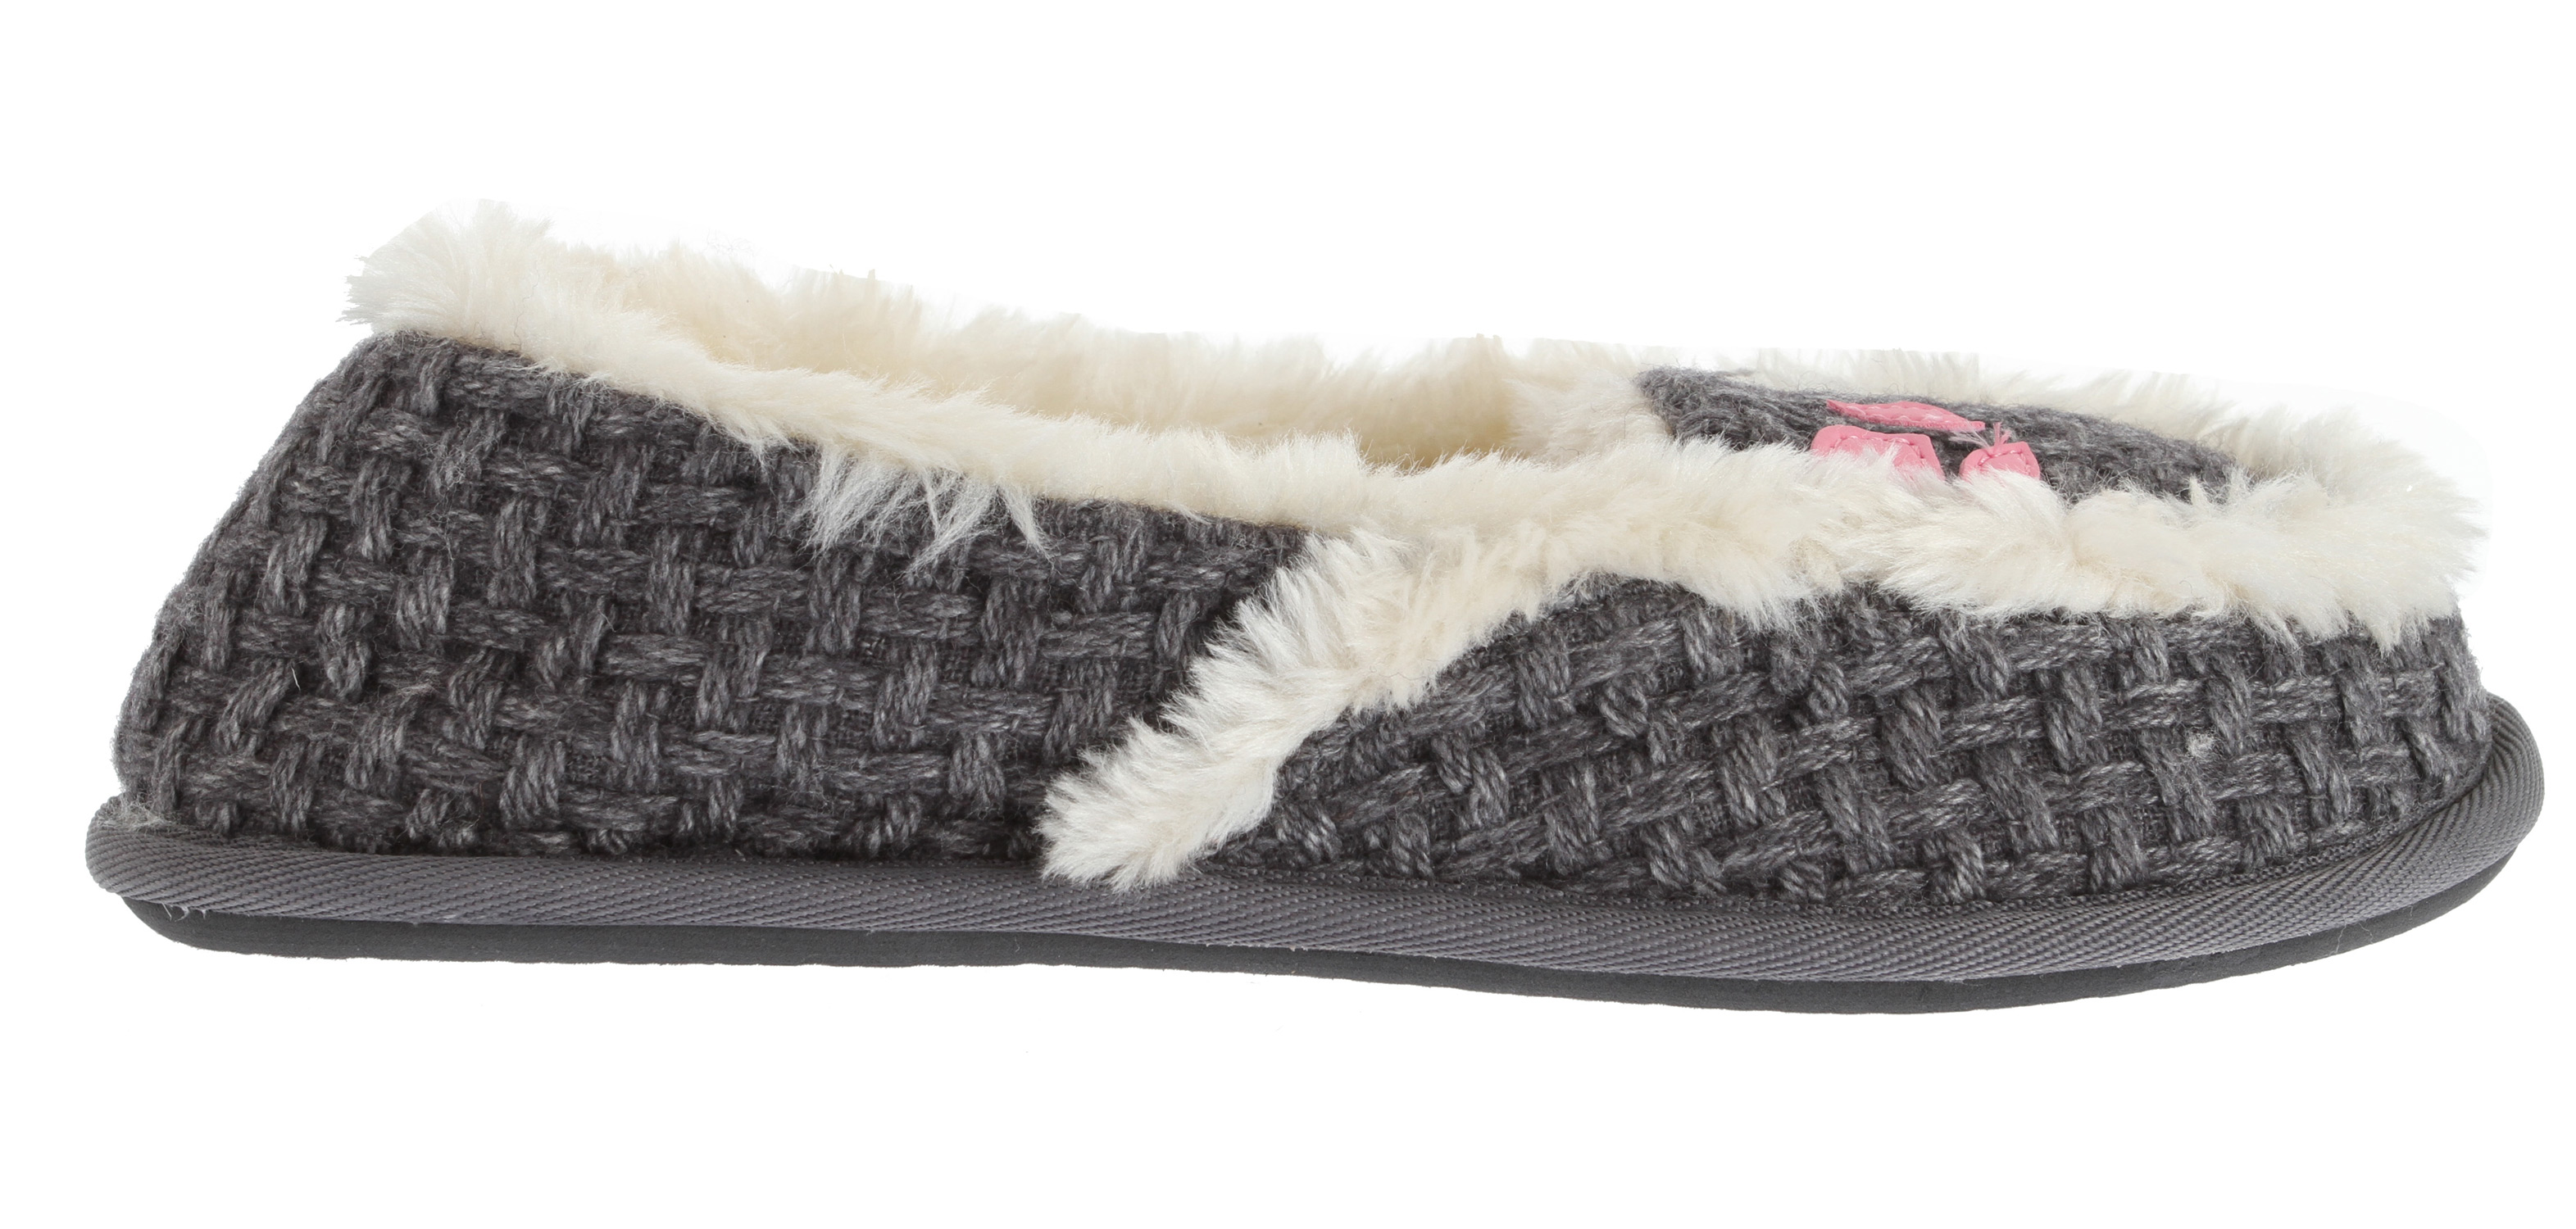 Surf Kick-start your morning routine with the colorful and cozy Snooze Bar 2 from Reef. Crafted with a soft, multi-tone plaid fabric upper, the slipper is trimmed and lined with plush faux shearling and features a flexible, non-skid rubber sole. It's a definite treat for the feet on those cold, wintry days!Key Features of the Reef Snooze Bar 2 Sandals: Fabric upper Faux shearling or fur lining Rubber sole - $22.95